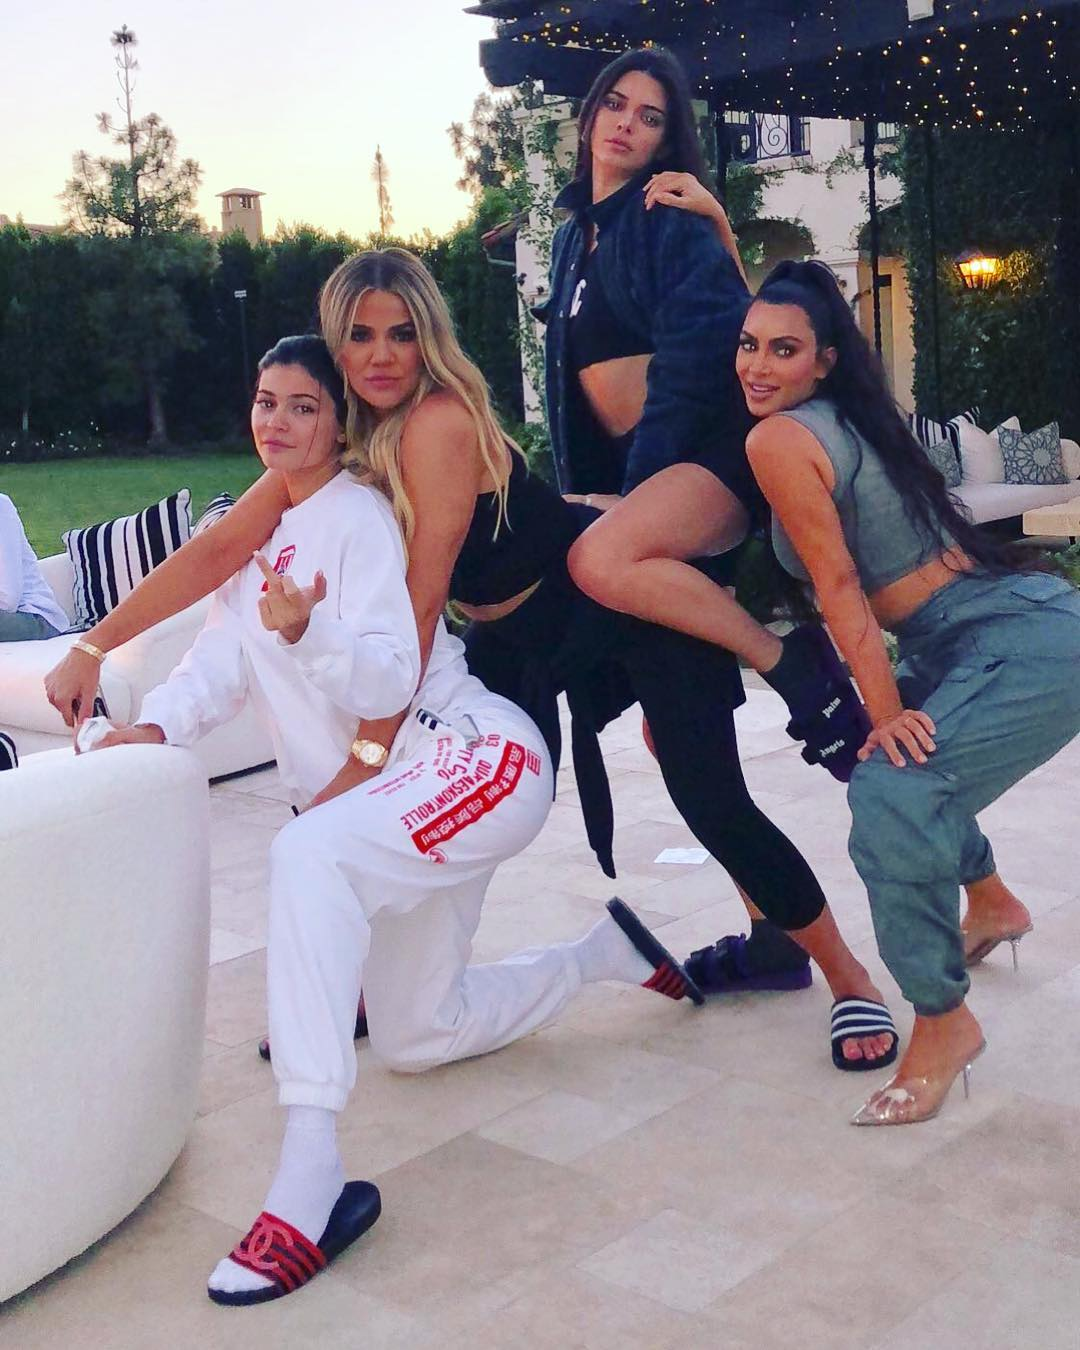 Inside Khloé Kardashian's Backyard 34th Birthday Bash